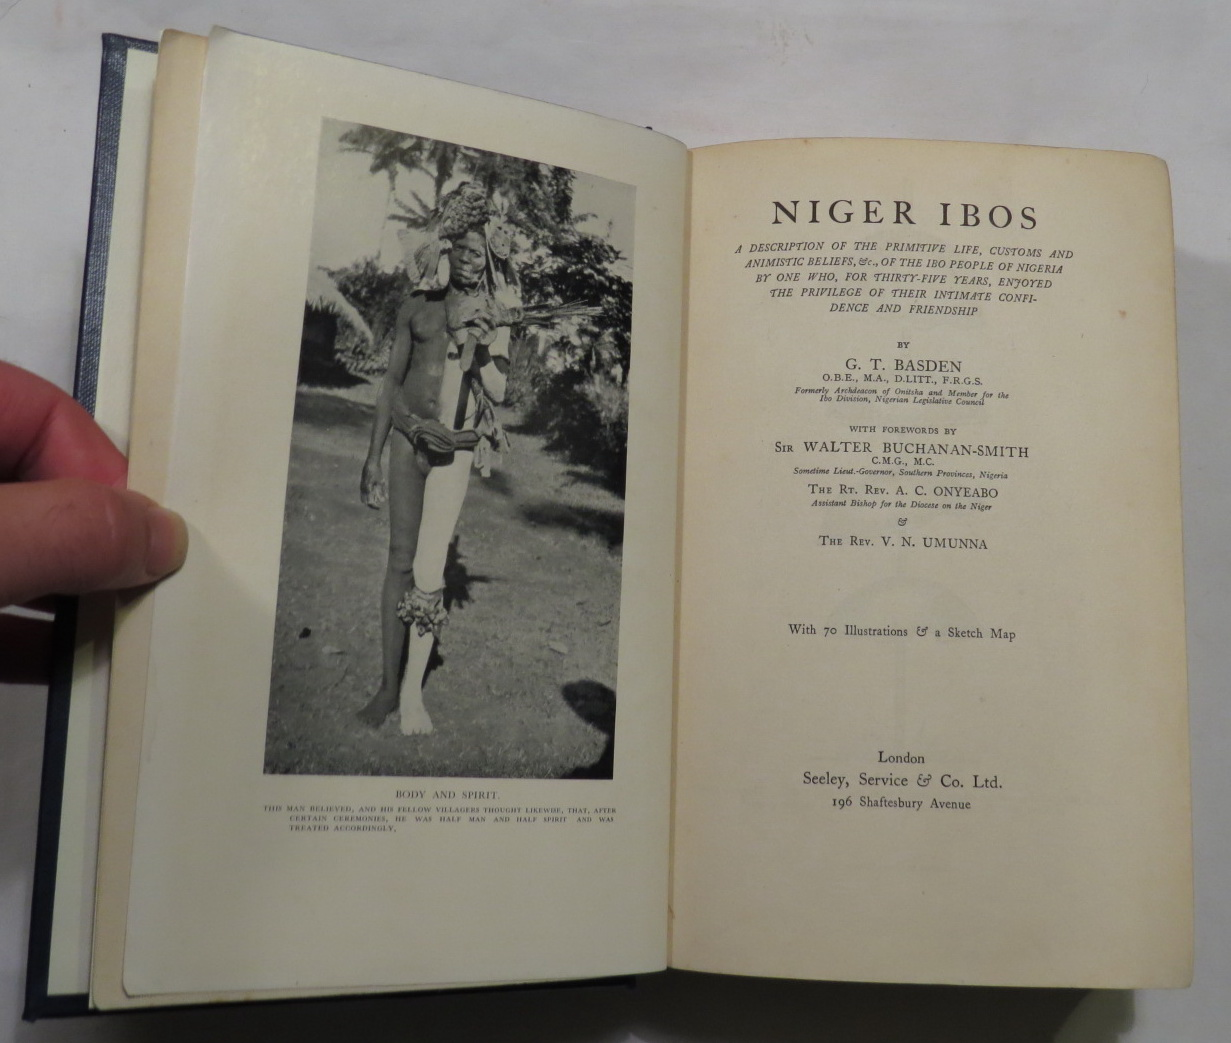 Image for Niger Ibos - A Description of the Primitive Life, Customs and Animistic Beliefs, &c., of the Ibo People of Nigeria by one who, for thirty-five years, enjoyed the privilege of their intimate confidence and friendship